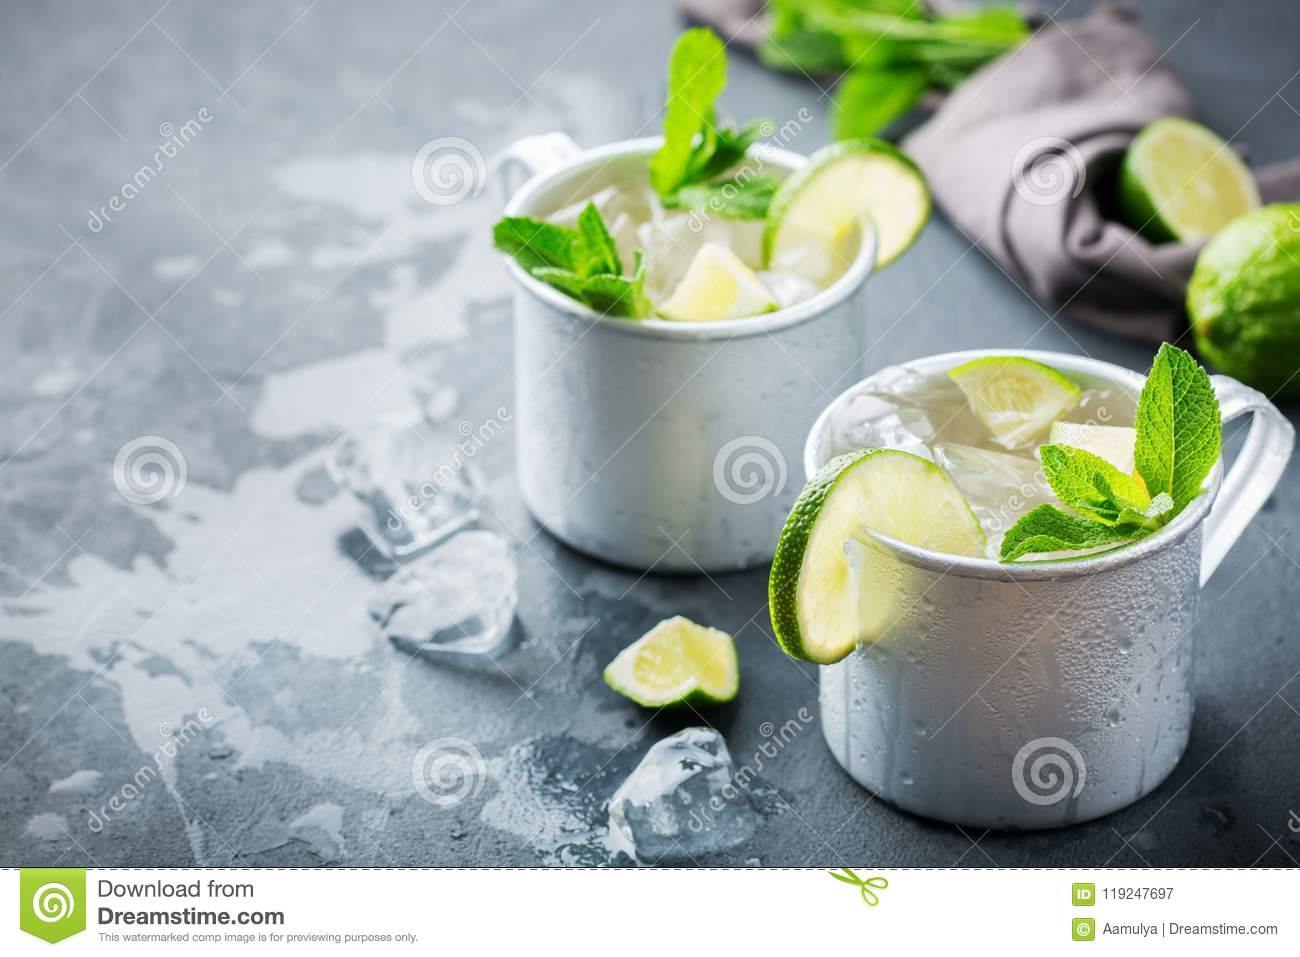 Moscow Mule Cocktail With Vodka Ginger Beer Lime And Mint Stock Image Image Of Moscow Sliced 119247697